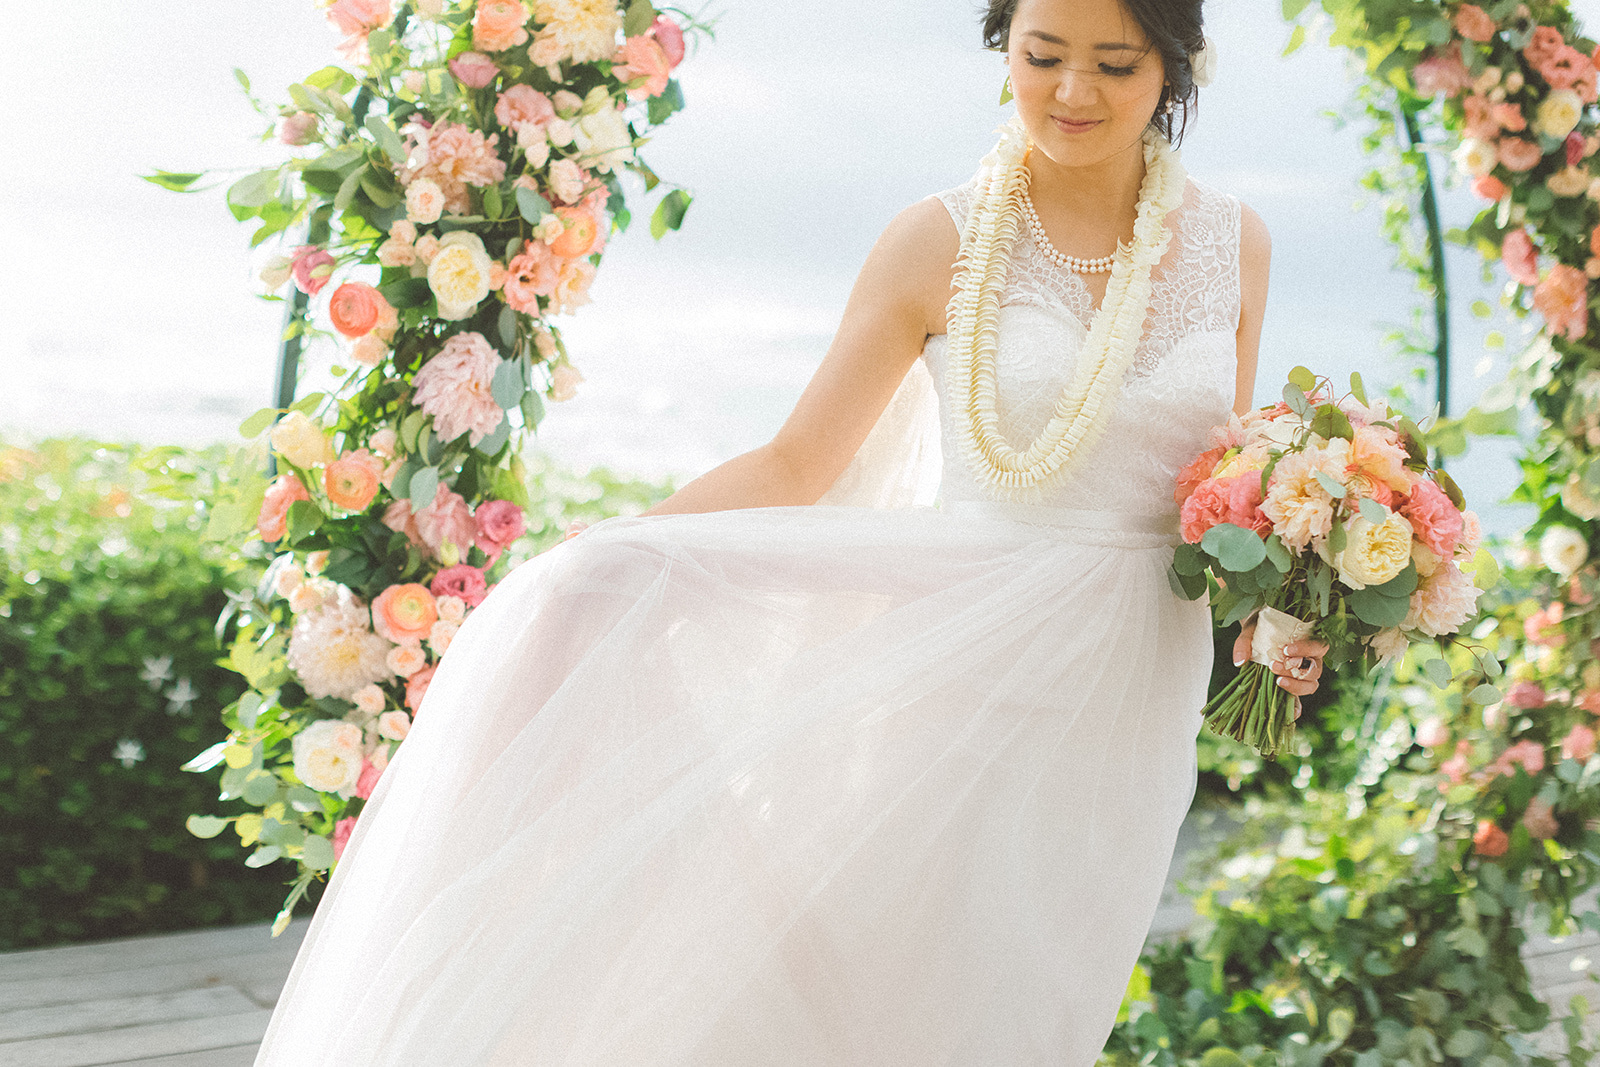 maui+beautiful+bride+in+floral+circular+arch+merrimans+kapalua+maui+wedding.jpg